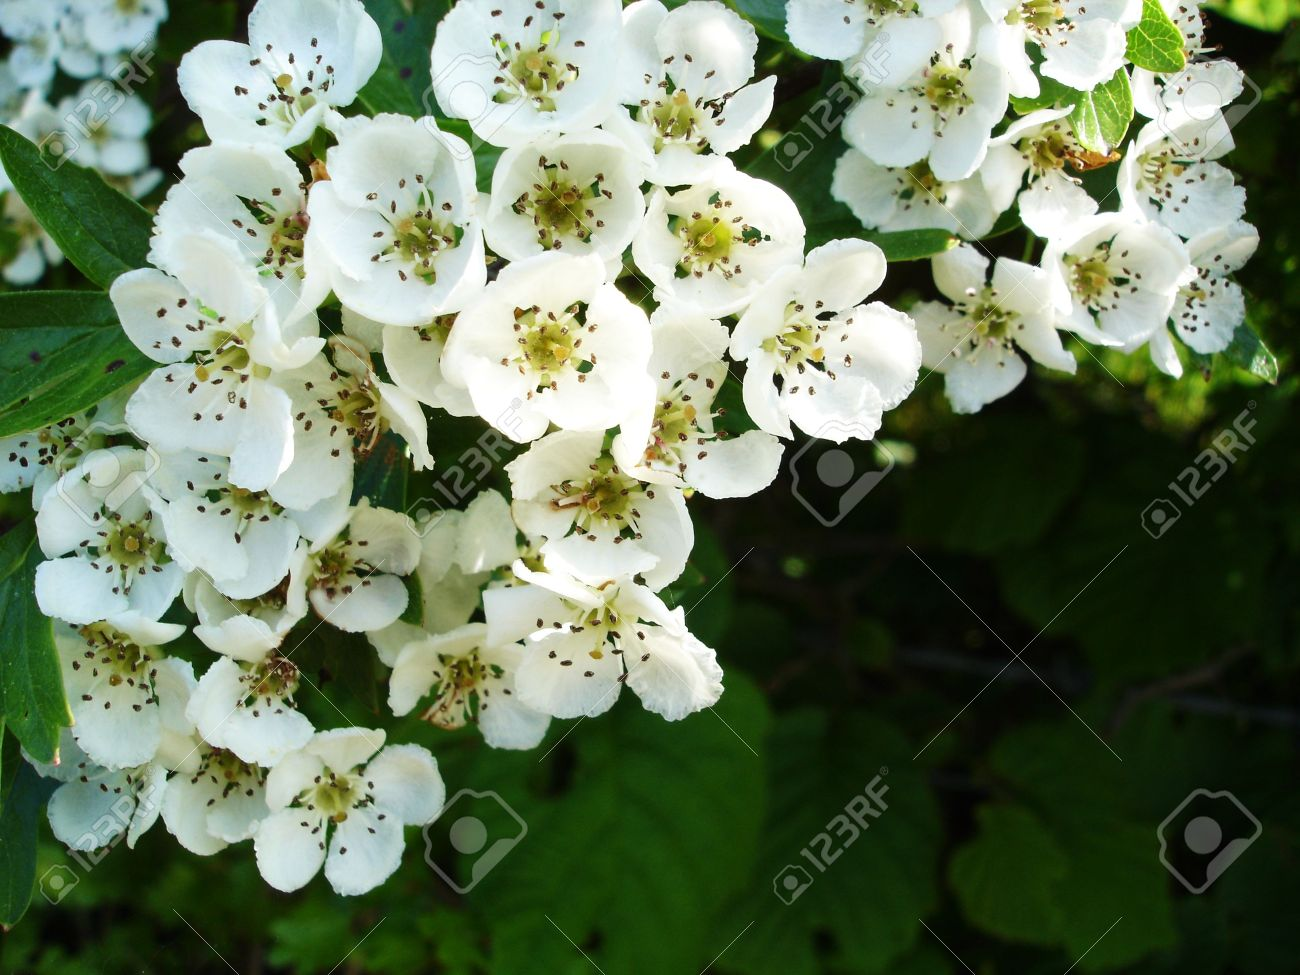 White flowers of the hawthorne bush stock photo picture and royalty stock photo white flowers of the hawthorne bush mightylinksfo Gallery